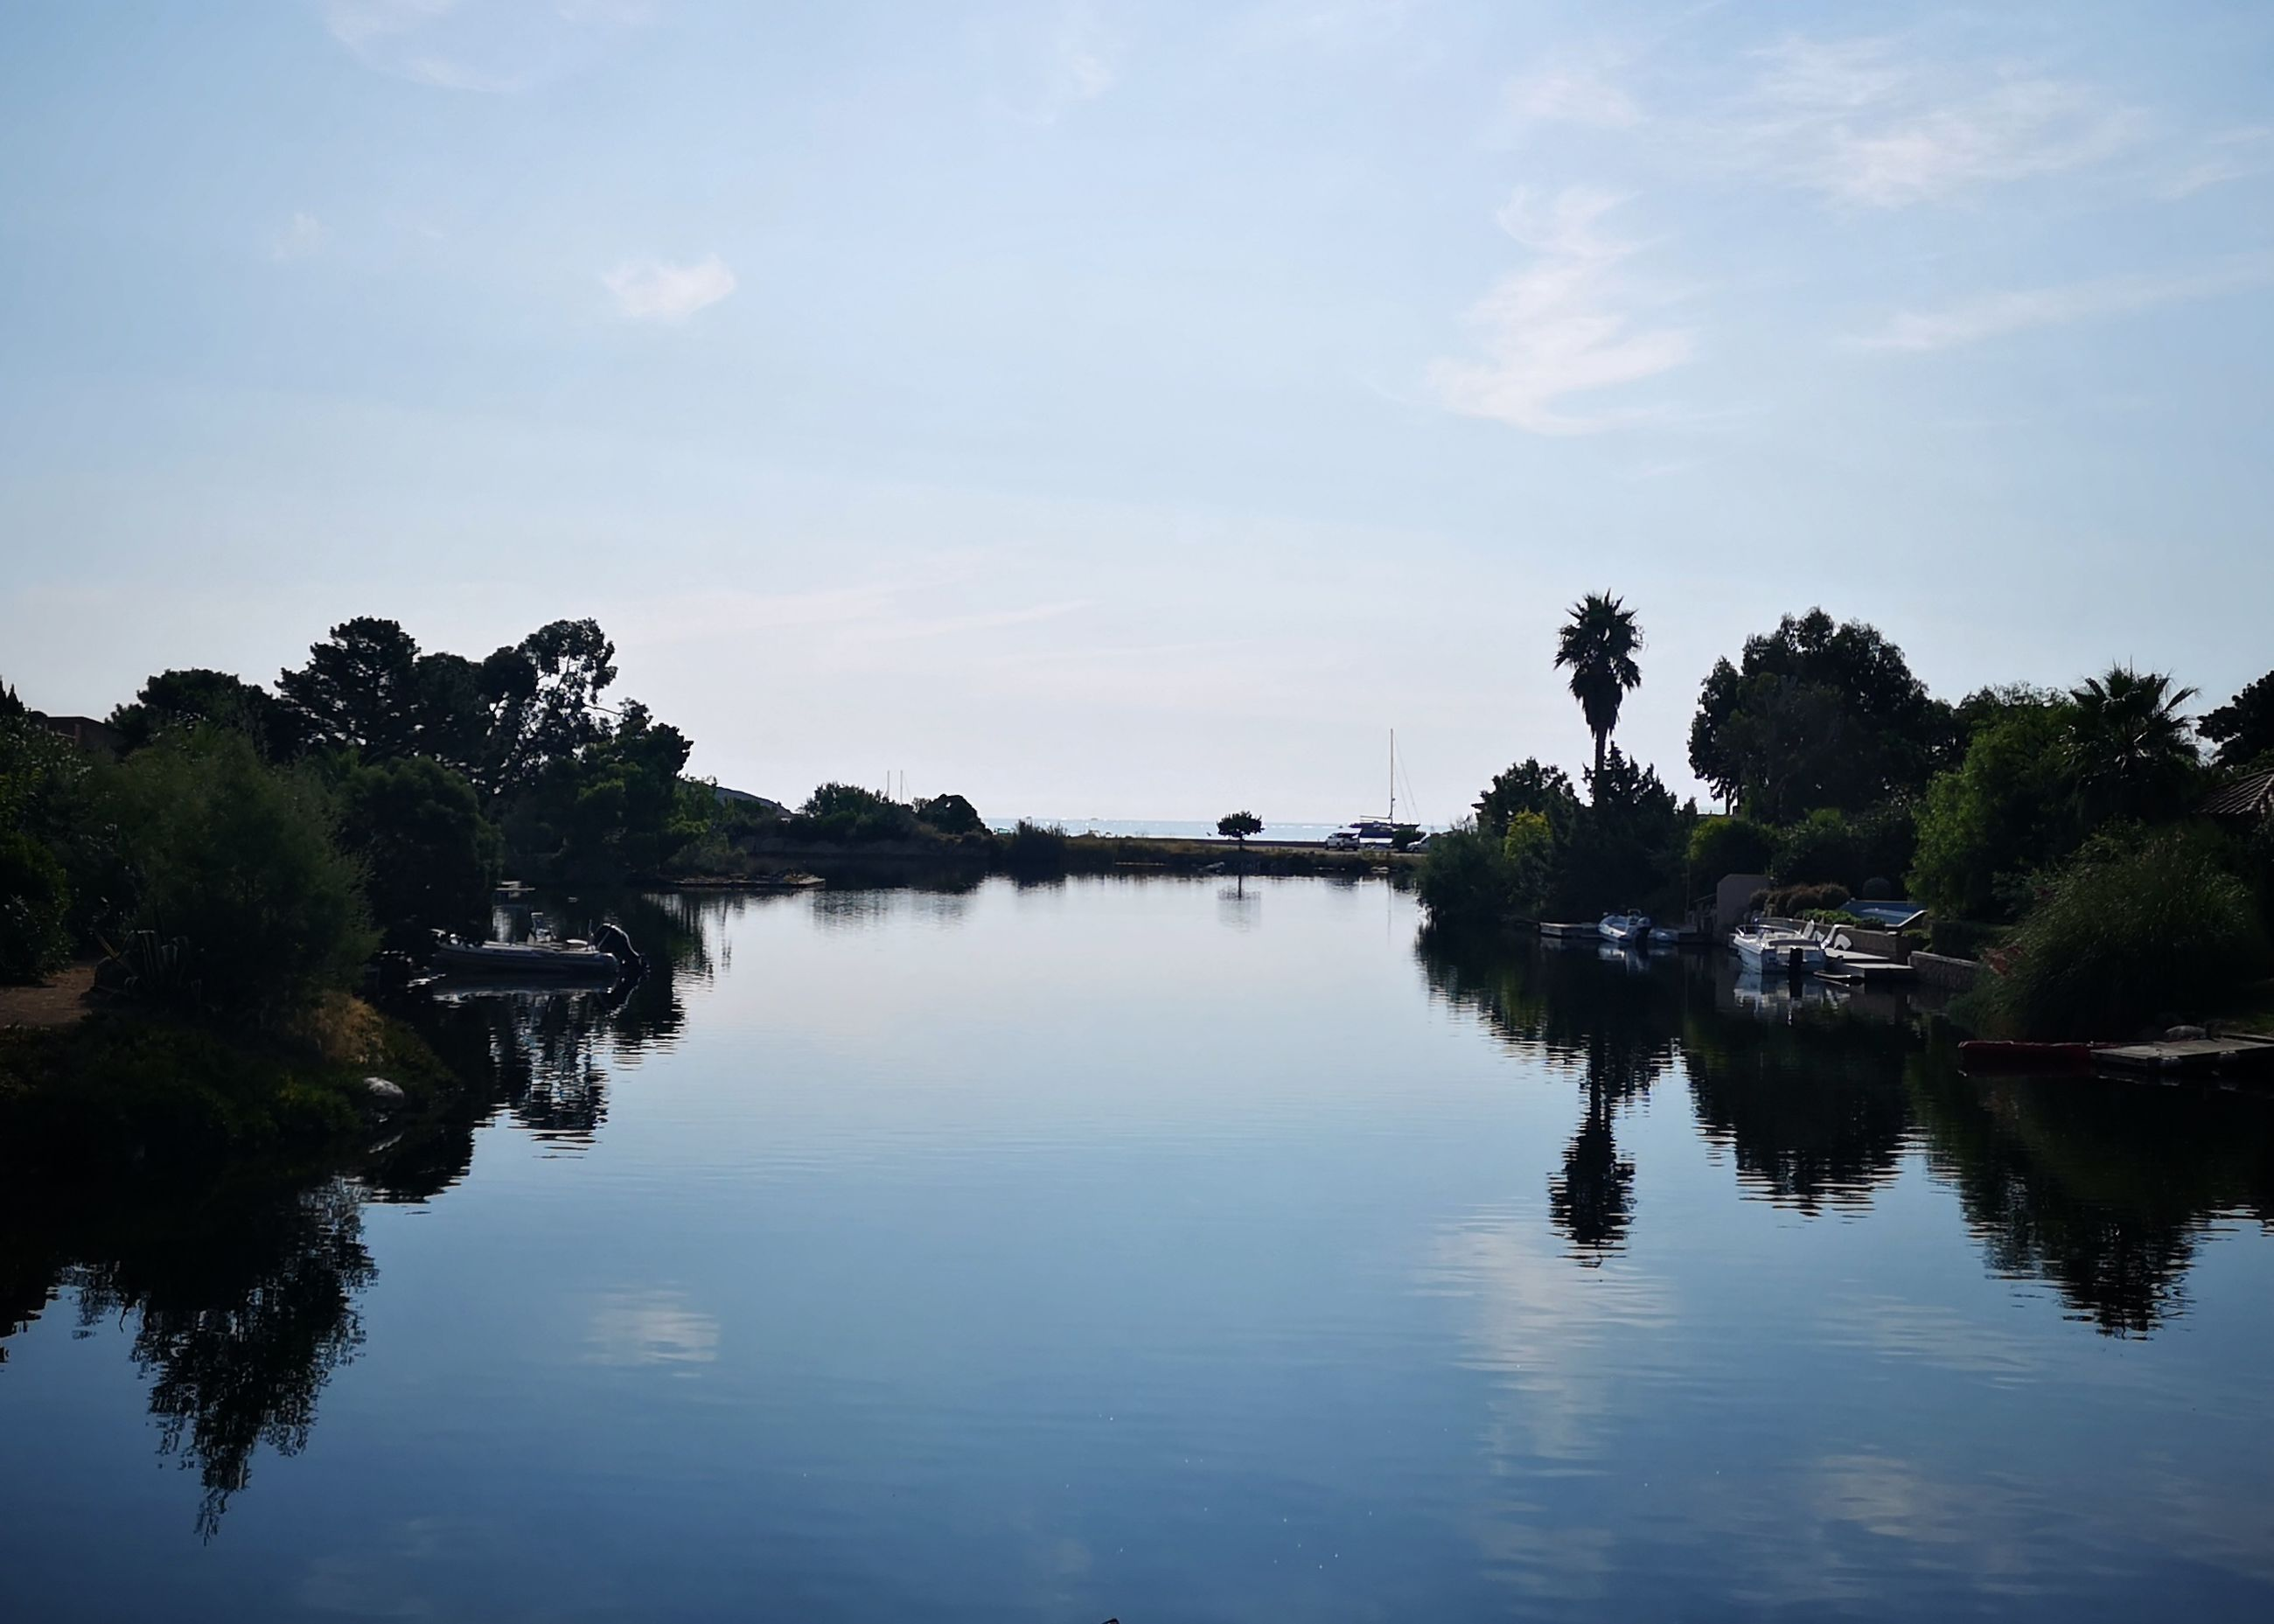 water, tree, sky, reflection, plant, waterfront, nature, scenics - nature, no people, tranquility, cloud - sky, beauty in nature, tranquil scene, lake, architecture, outdoors, built structure, growth